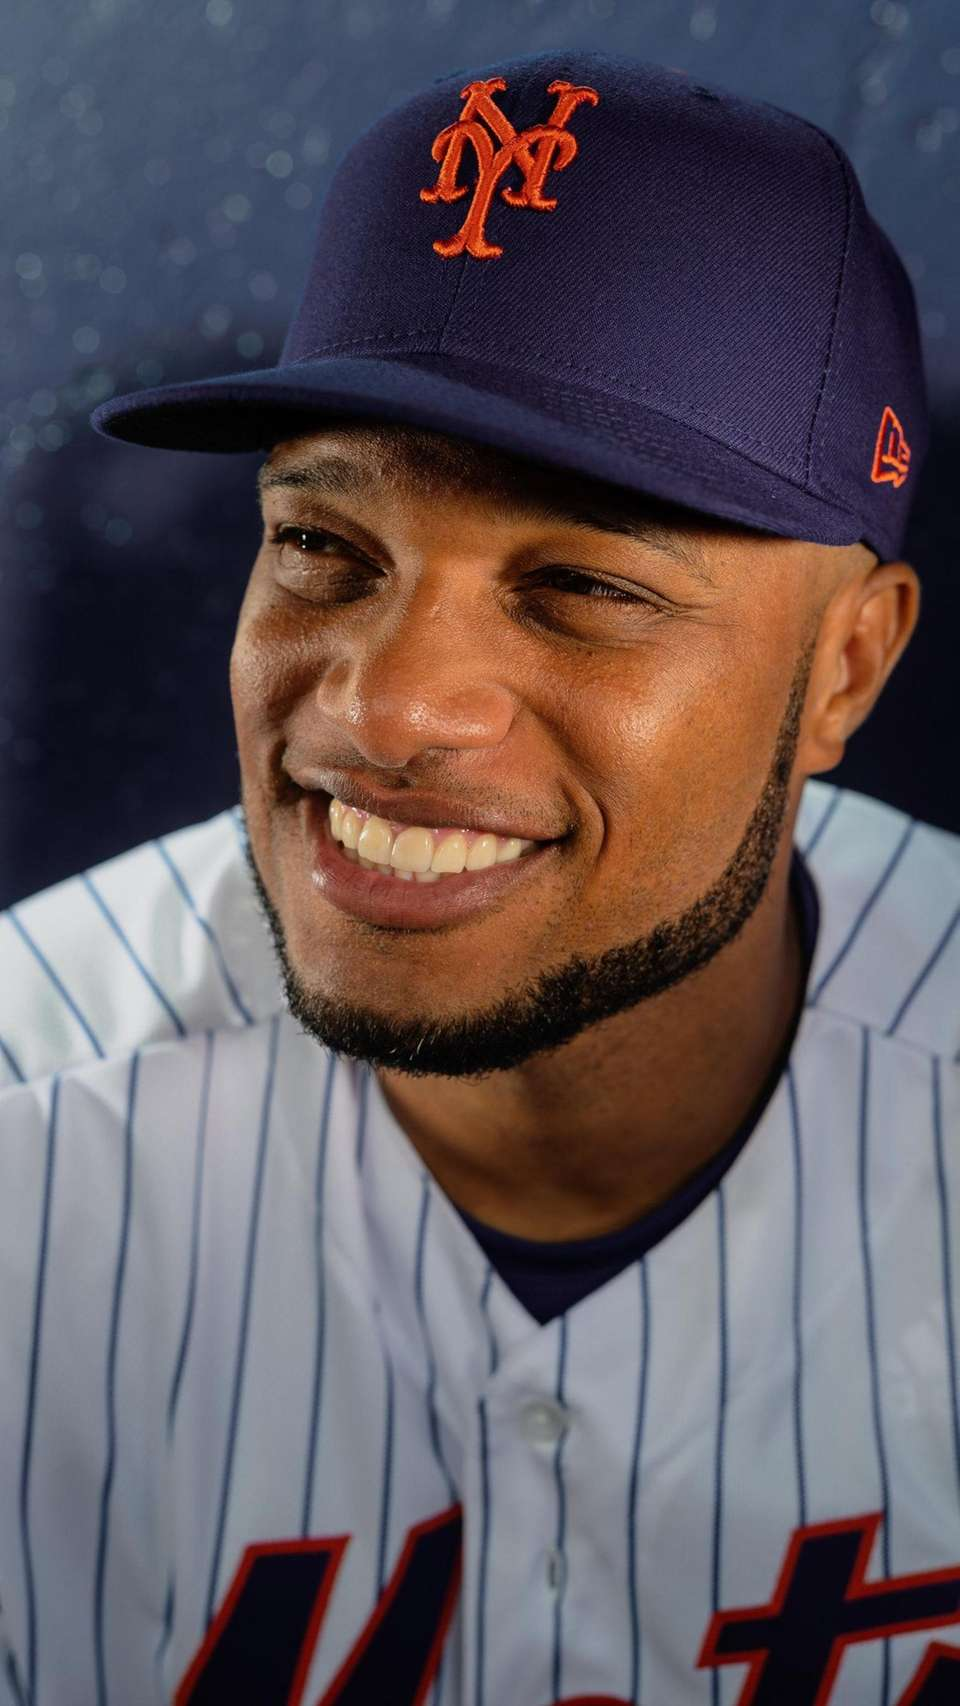 New York Mets infielder Robinson Cano during spring